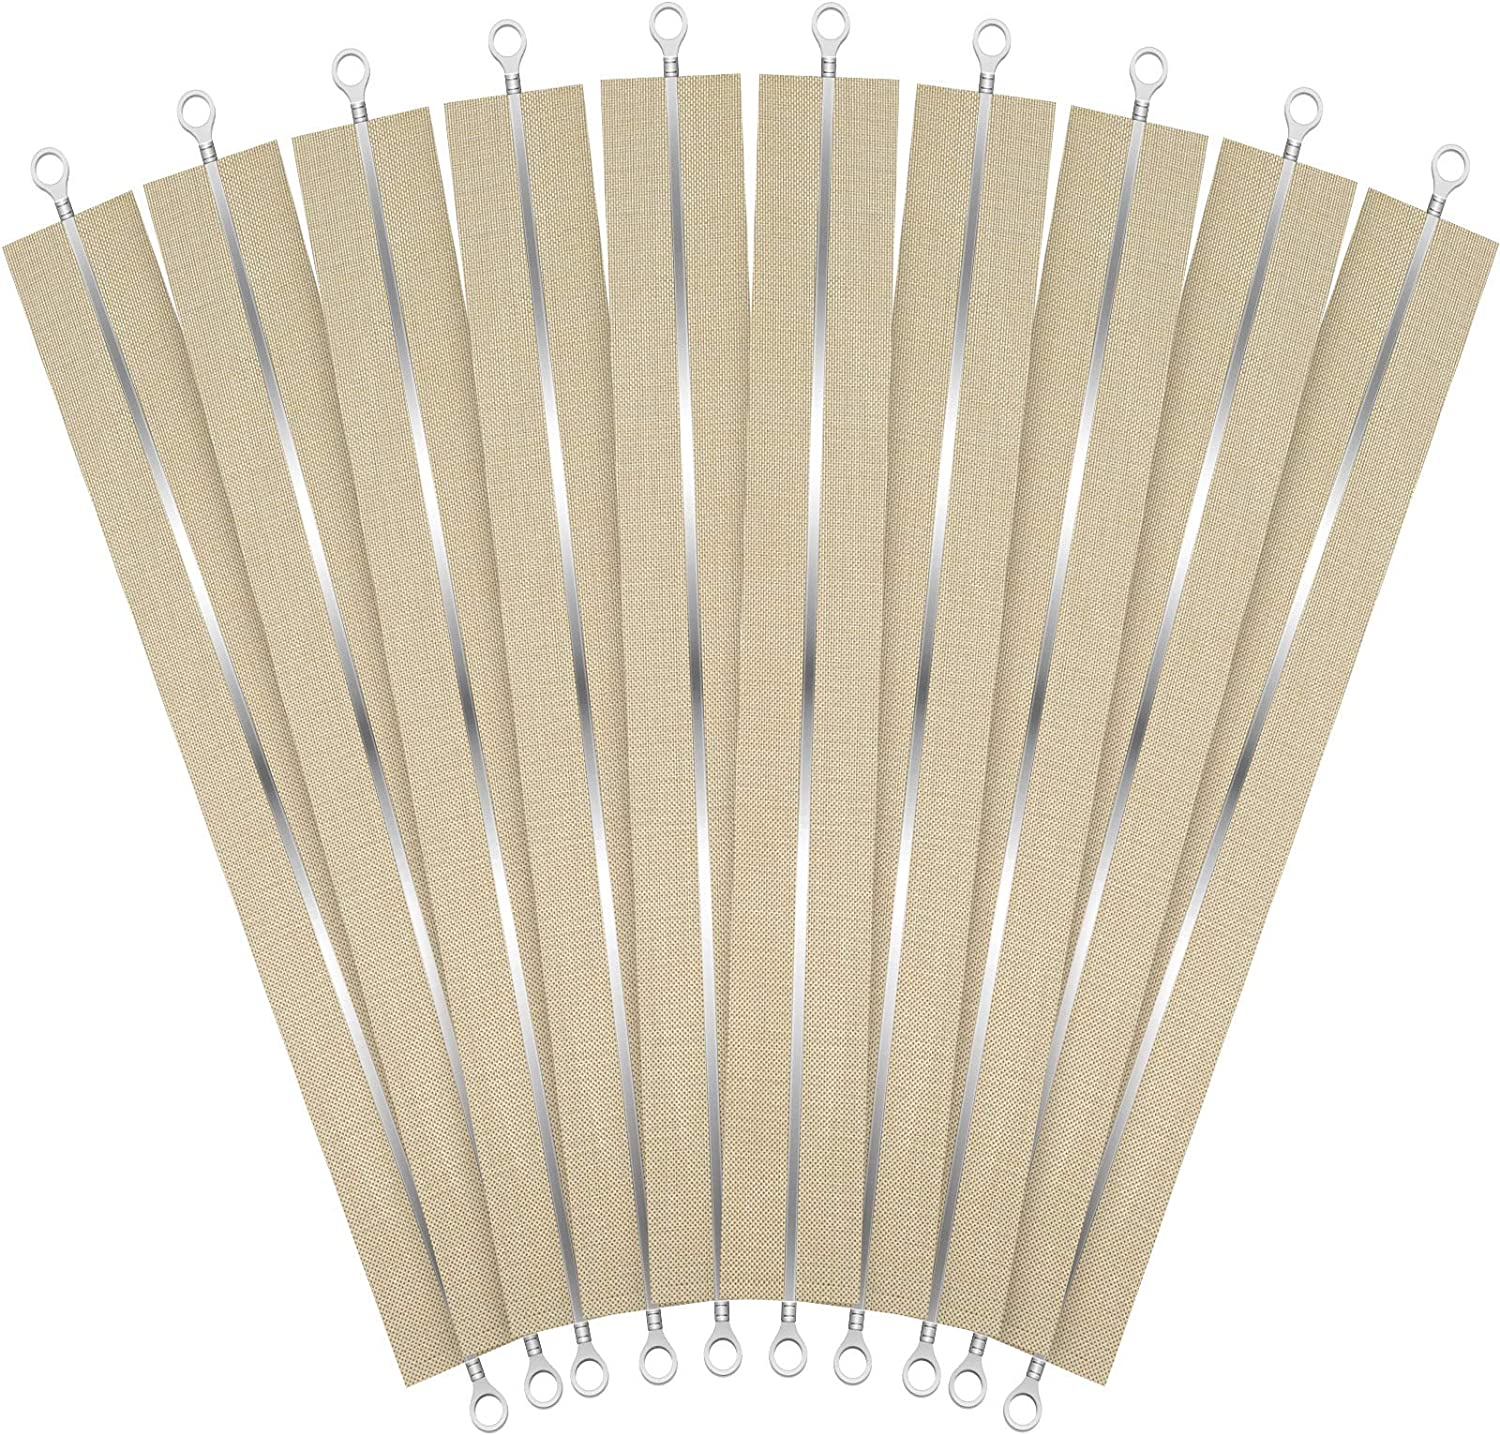 10 Pieces 8 Inch Impulse Sealer Heating Element Service Spare Repair Parts Kit Heat Seal Strips Replacement Elements Compatible with PFS-200 FS-200 PSF-200 PSF200 F-200 (200 mm)